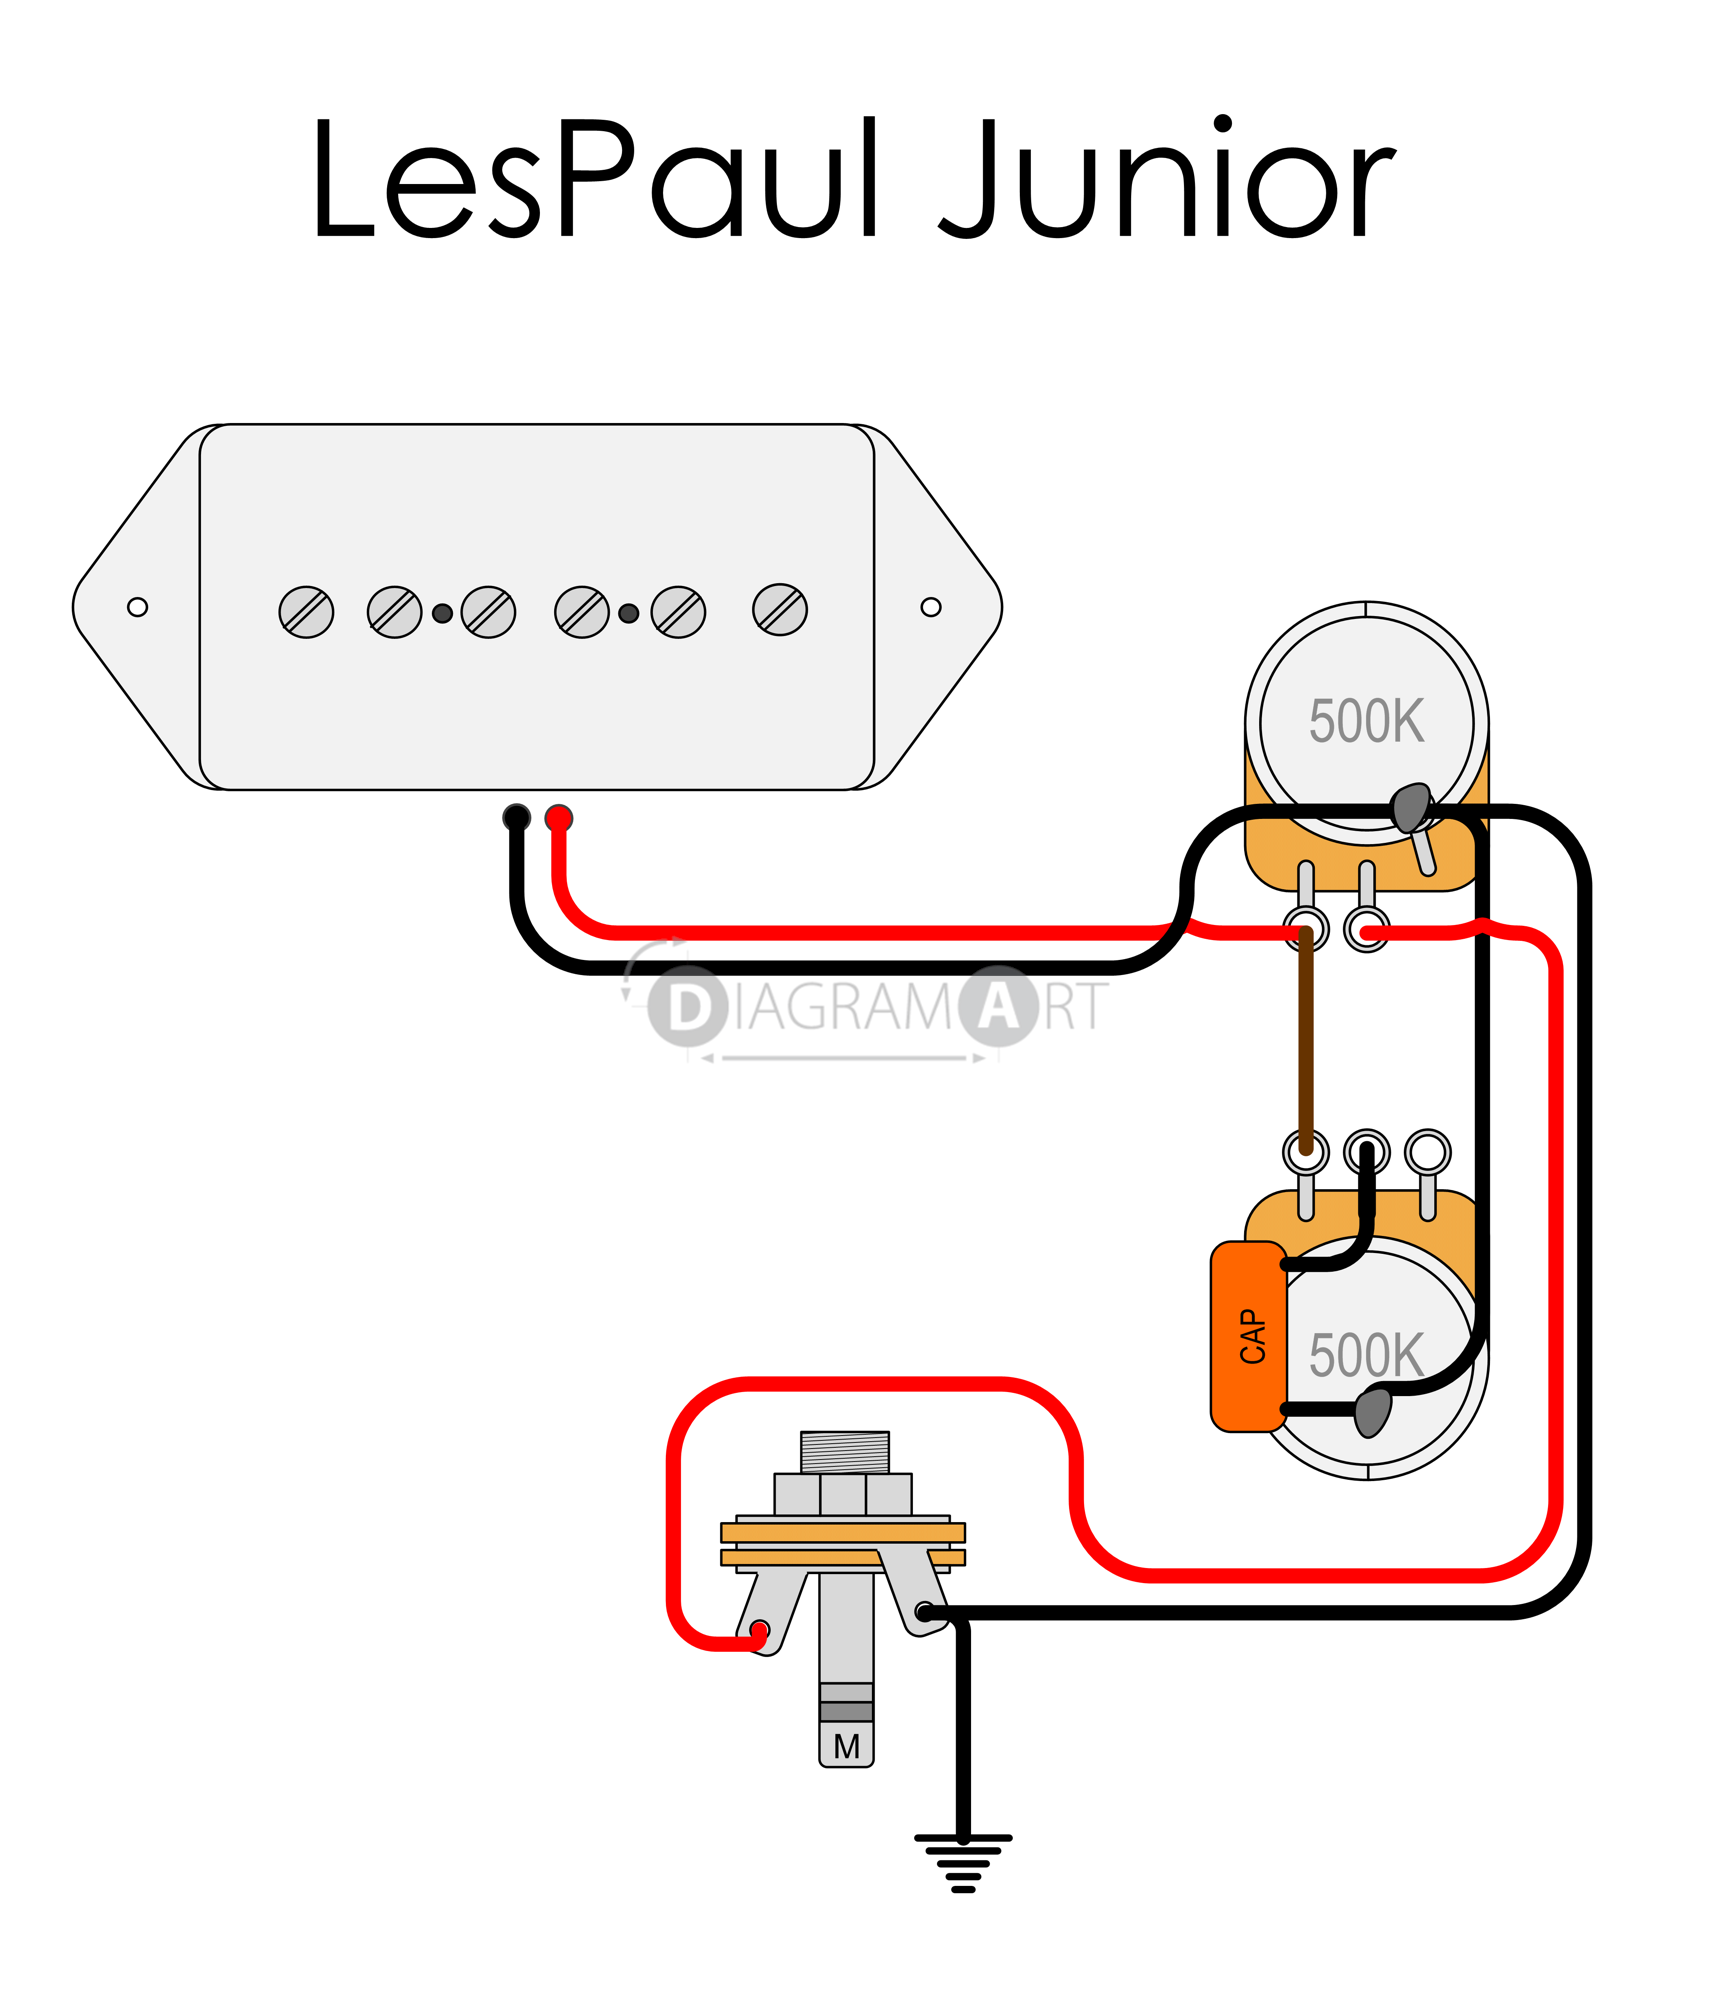 Fresh Wiring Diagram Guitar #diagrams #digramssample #diagramimages  #wiringdiagramsample #wiringdiagram Ch… | Epiphone les paul, Les paul,  Epiphone les paul specialPinterest